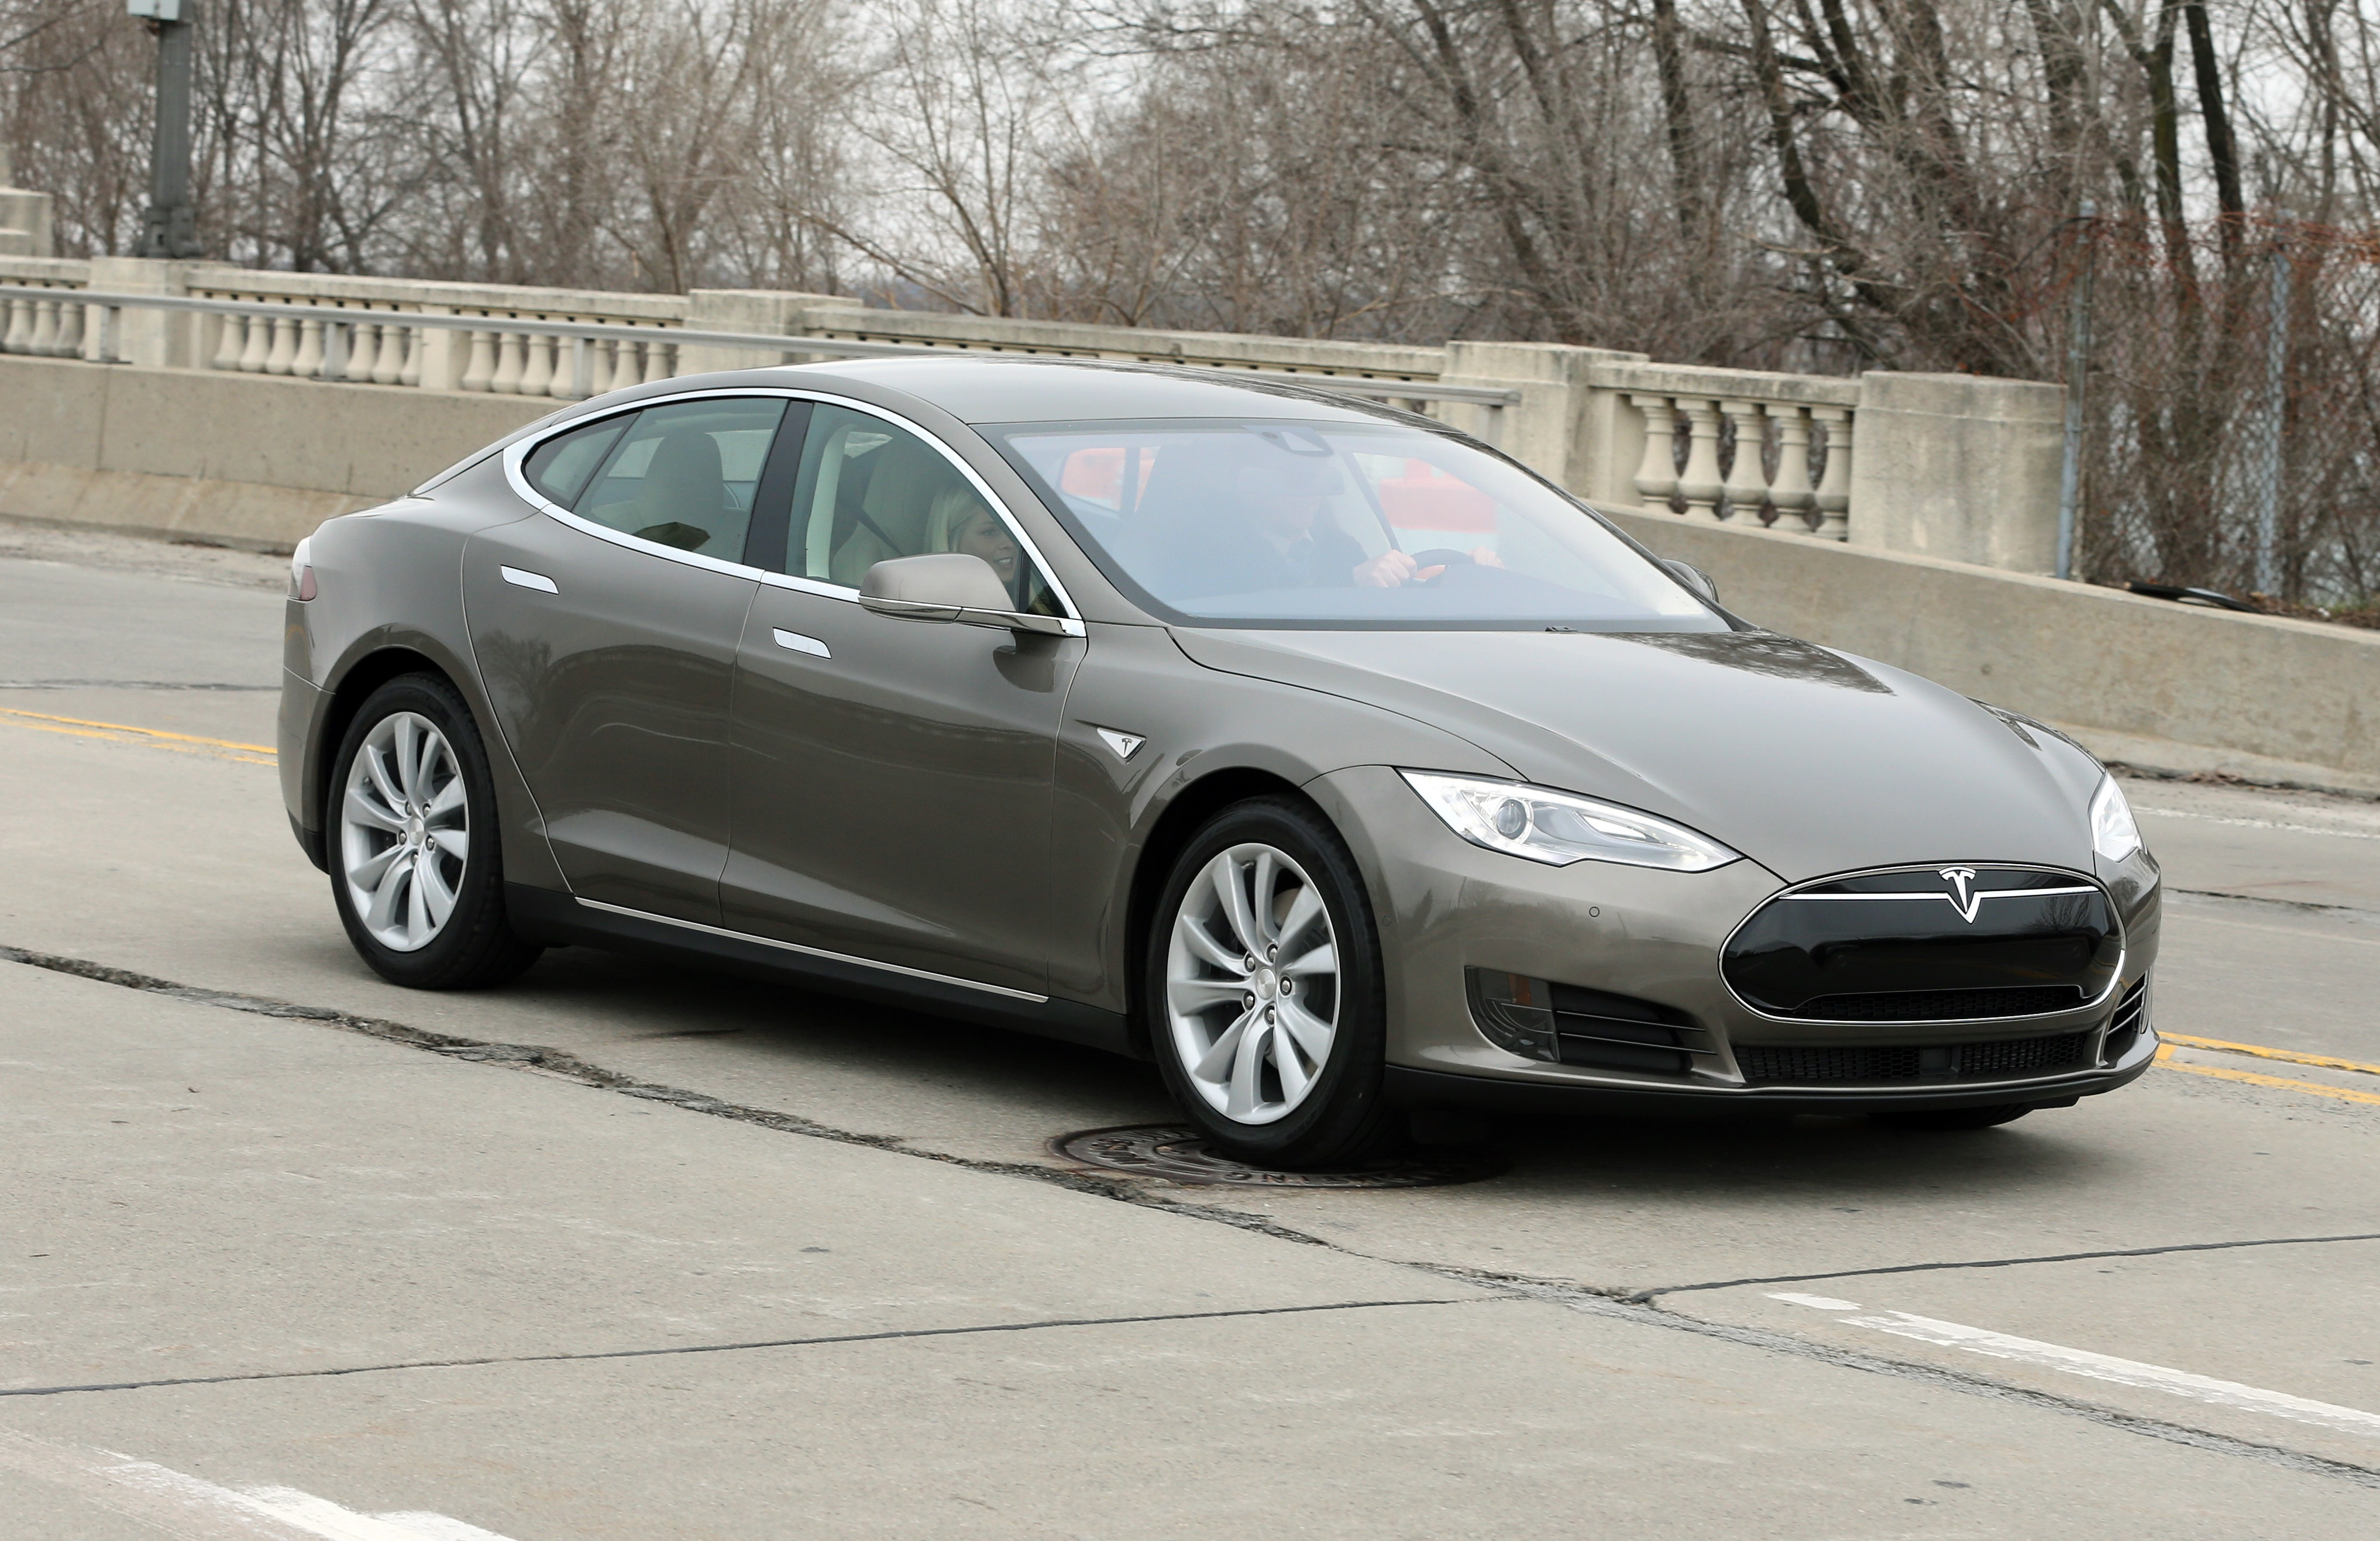 08eae35b1 Tesla unveils changes to its Model S - CBS News